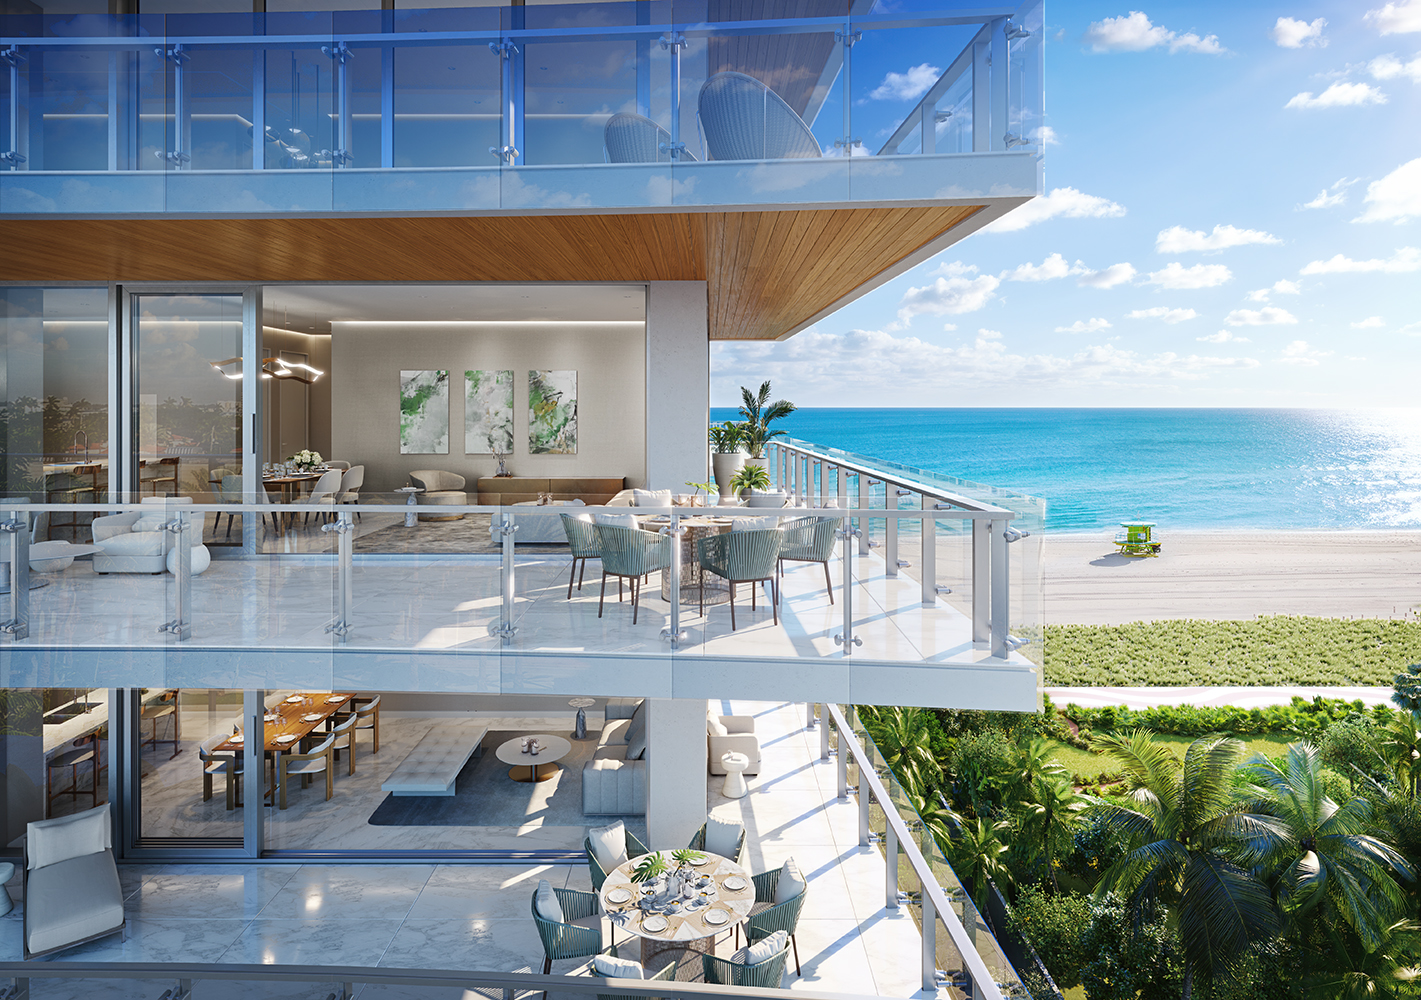 Exterior view of 57 Ocean residence balcony in Miami. Has view of oceanfront, trees and two residence balconies.